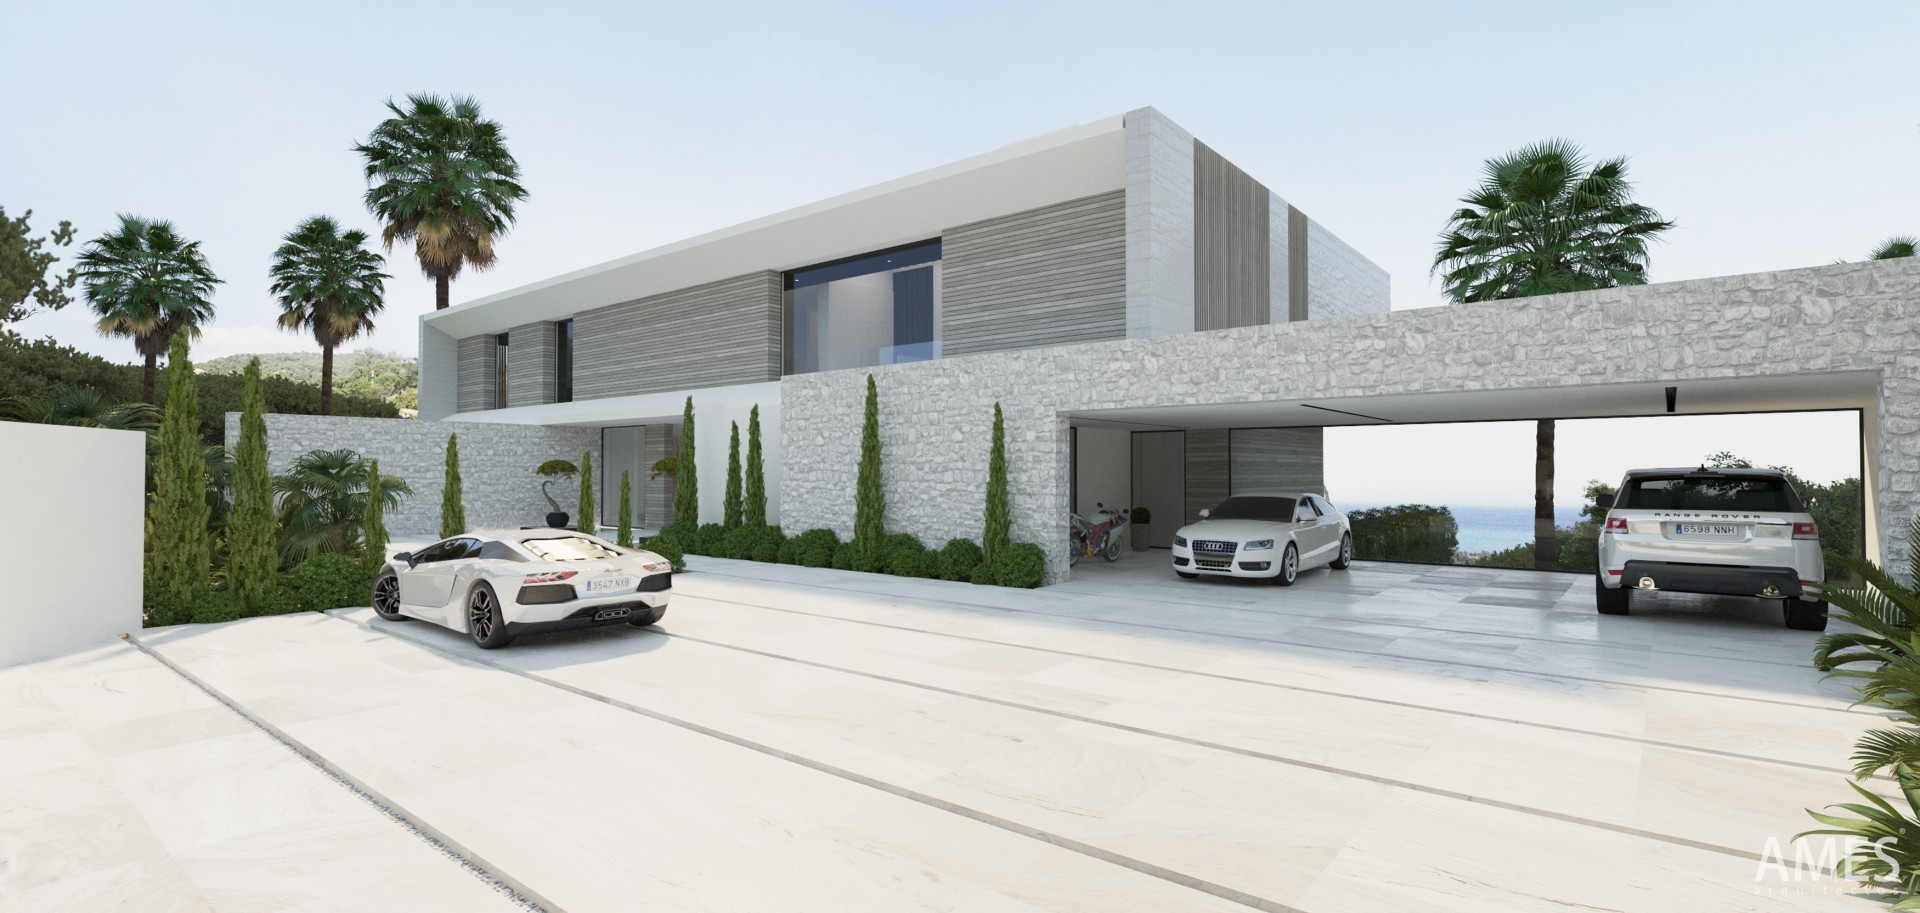 Qlistings - Brand new architectural masterpiece located in El Madroñal Property Image